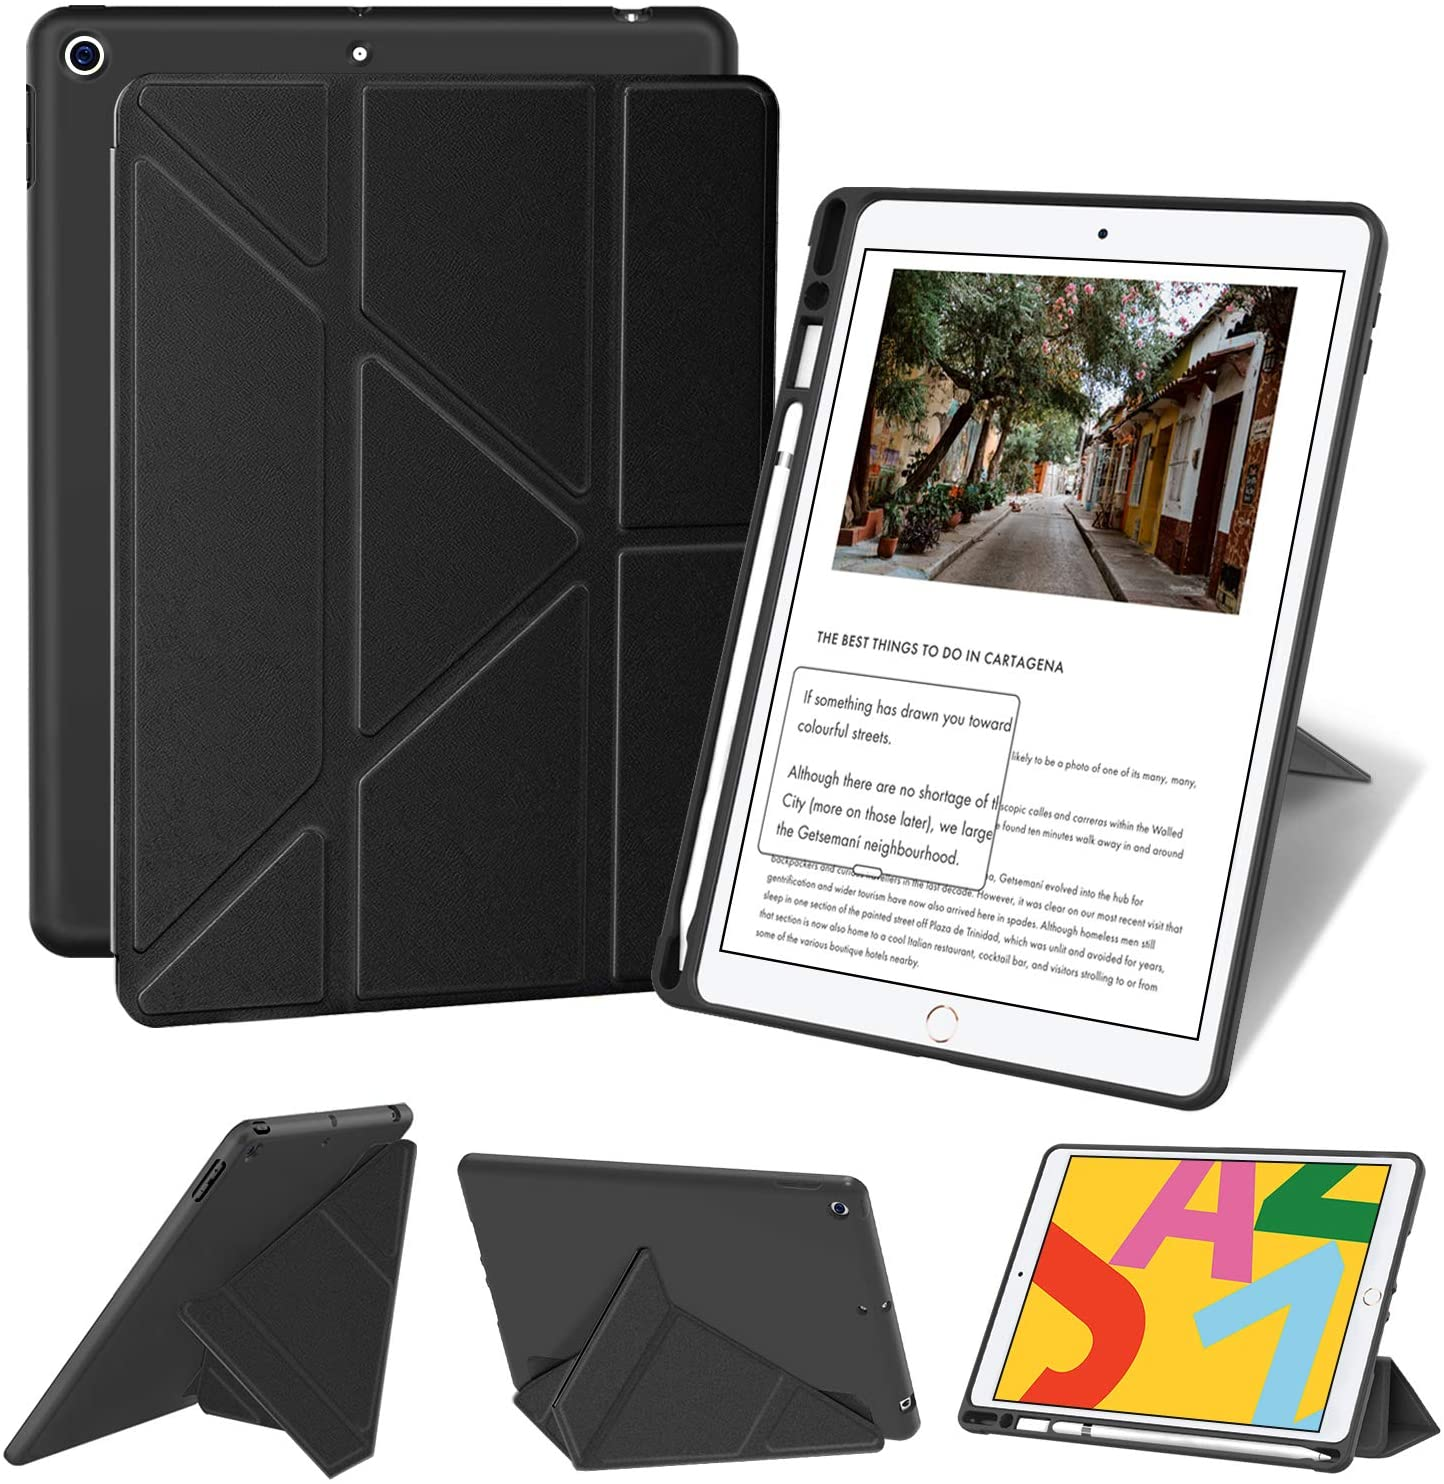 Supveco iPad 10.2 Case 2019 with Pencil Holder, Auto Wake/Sleep, Multiple Viewing Angles for iPad 7th Generation Case (Black)